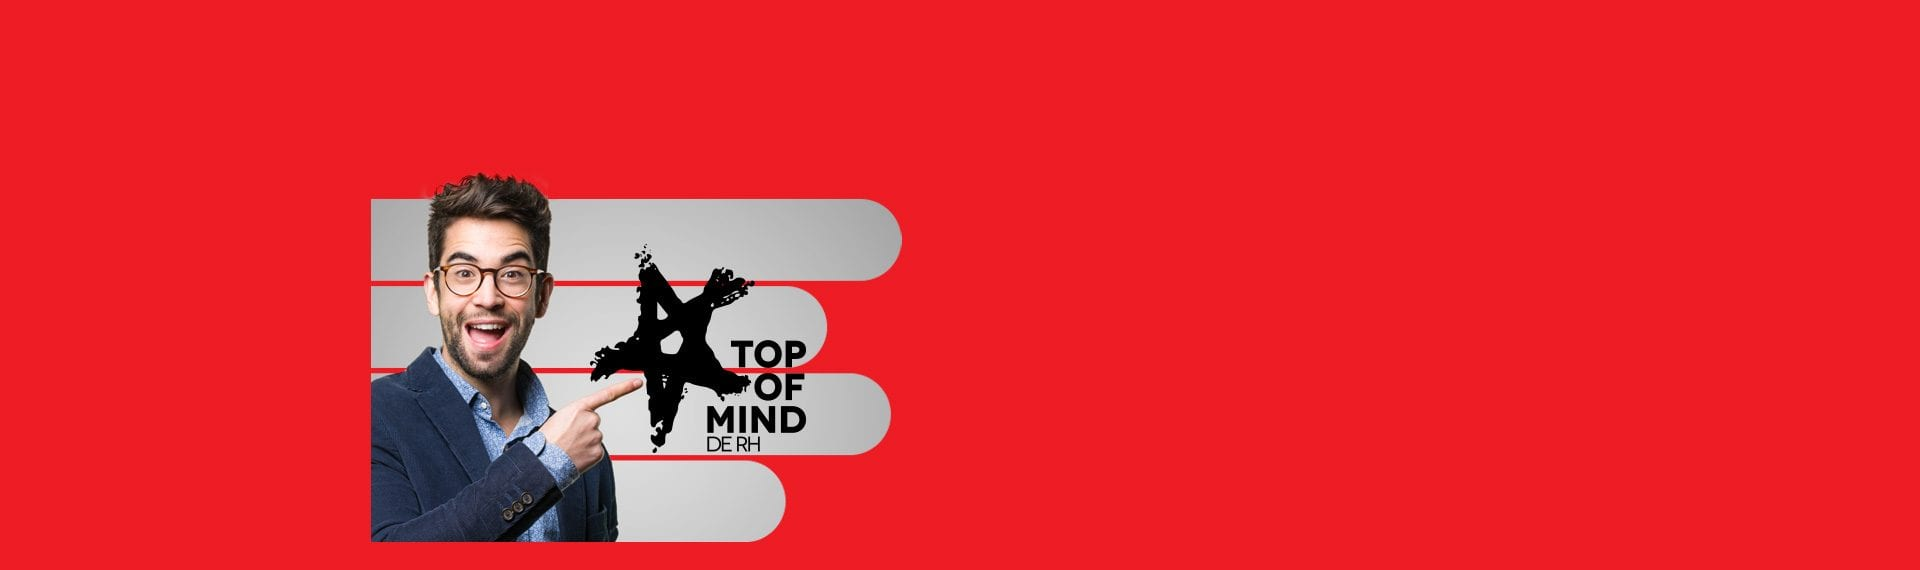 Top of Mind de RH 2018